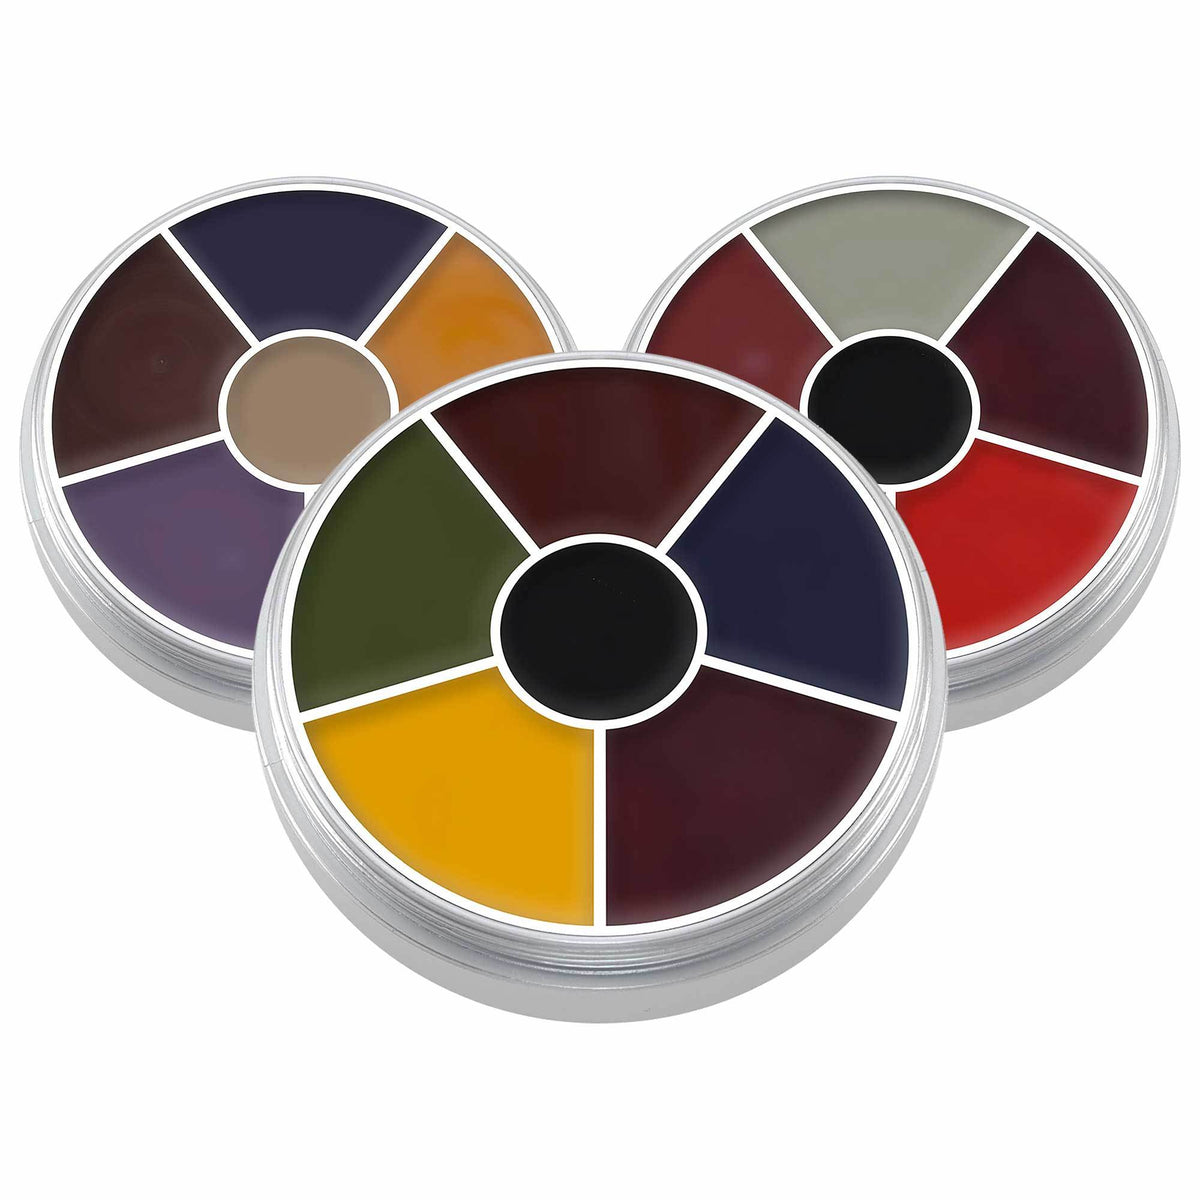 Kryolan SUPRACOLOR Cream Color Circle - Red Carpet FX - Professional Makeup